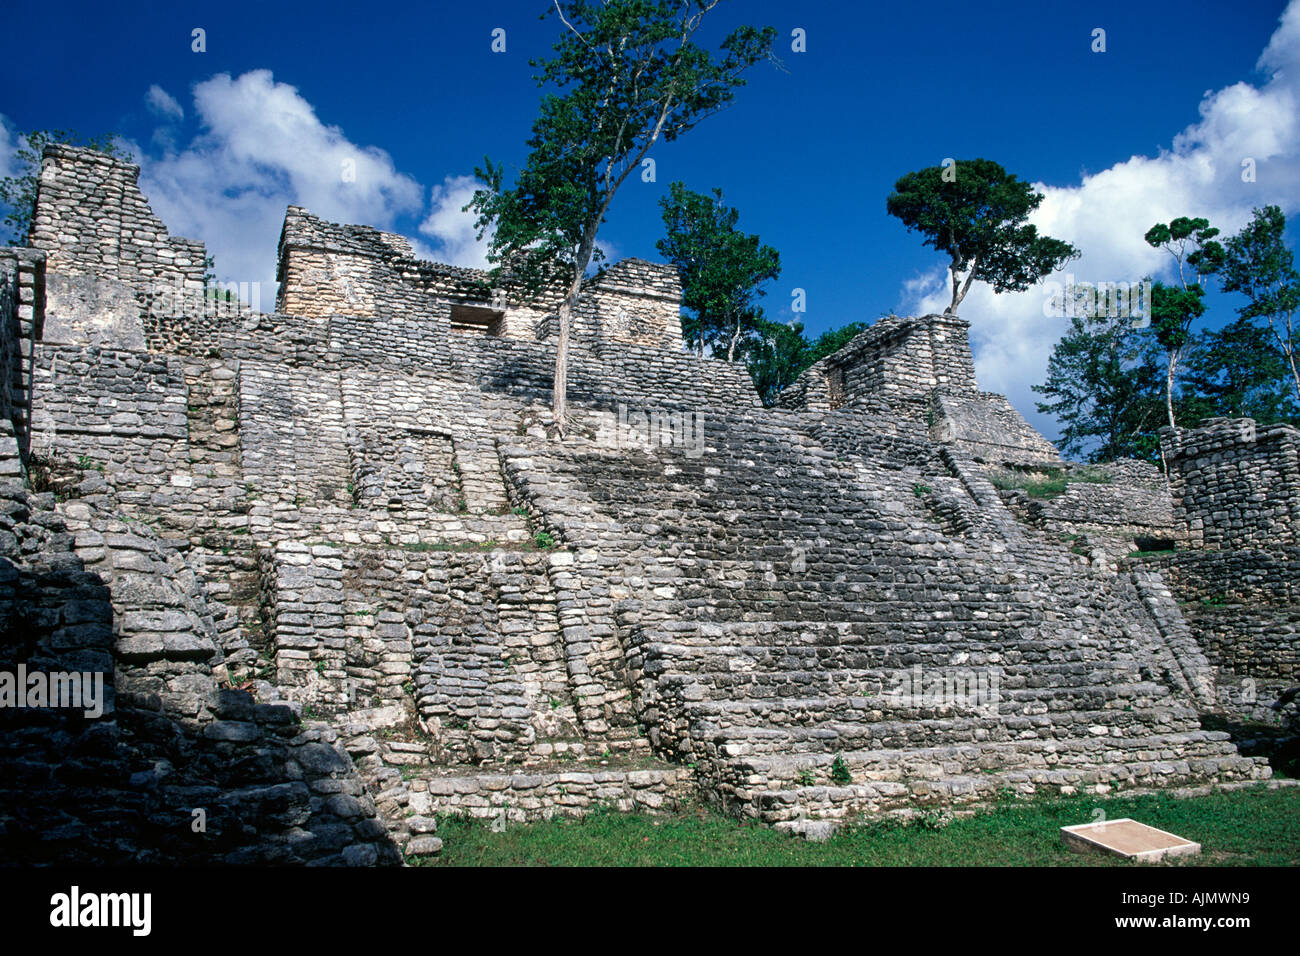 The Dzibanche Mayan ruins near Chetumal in Quintana Roo state in Mexico. - Stock Image